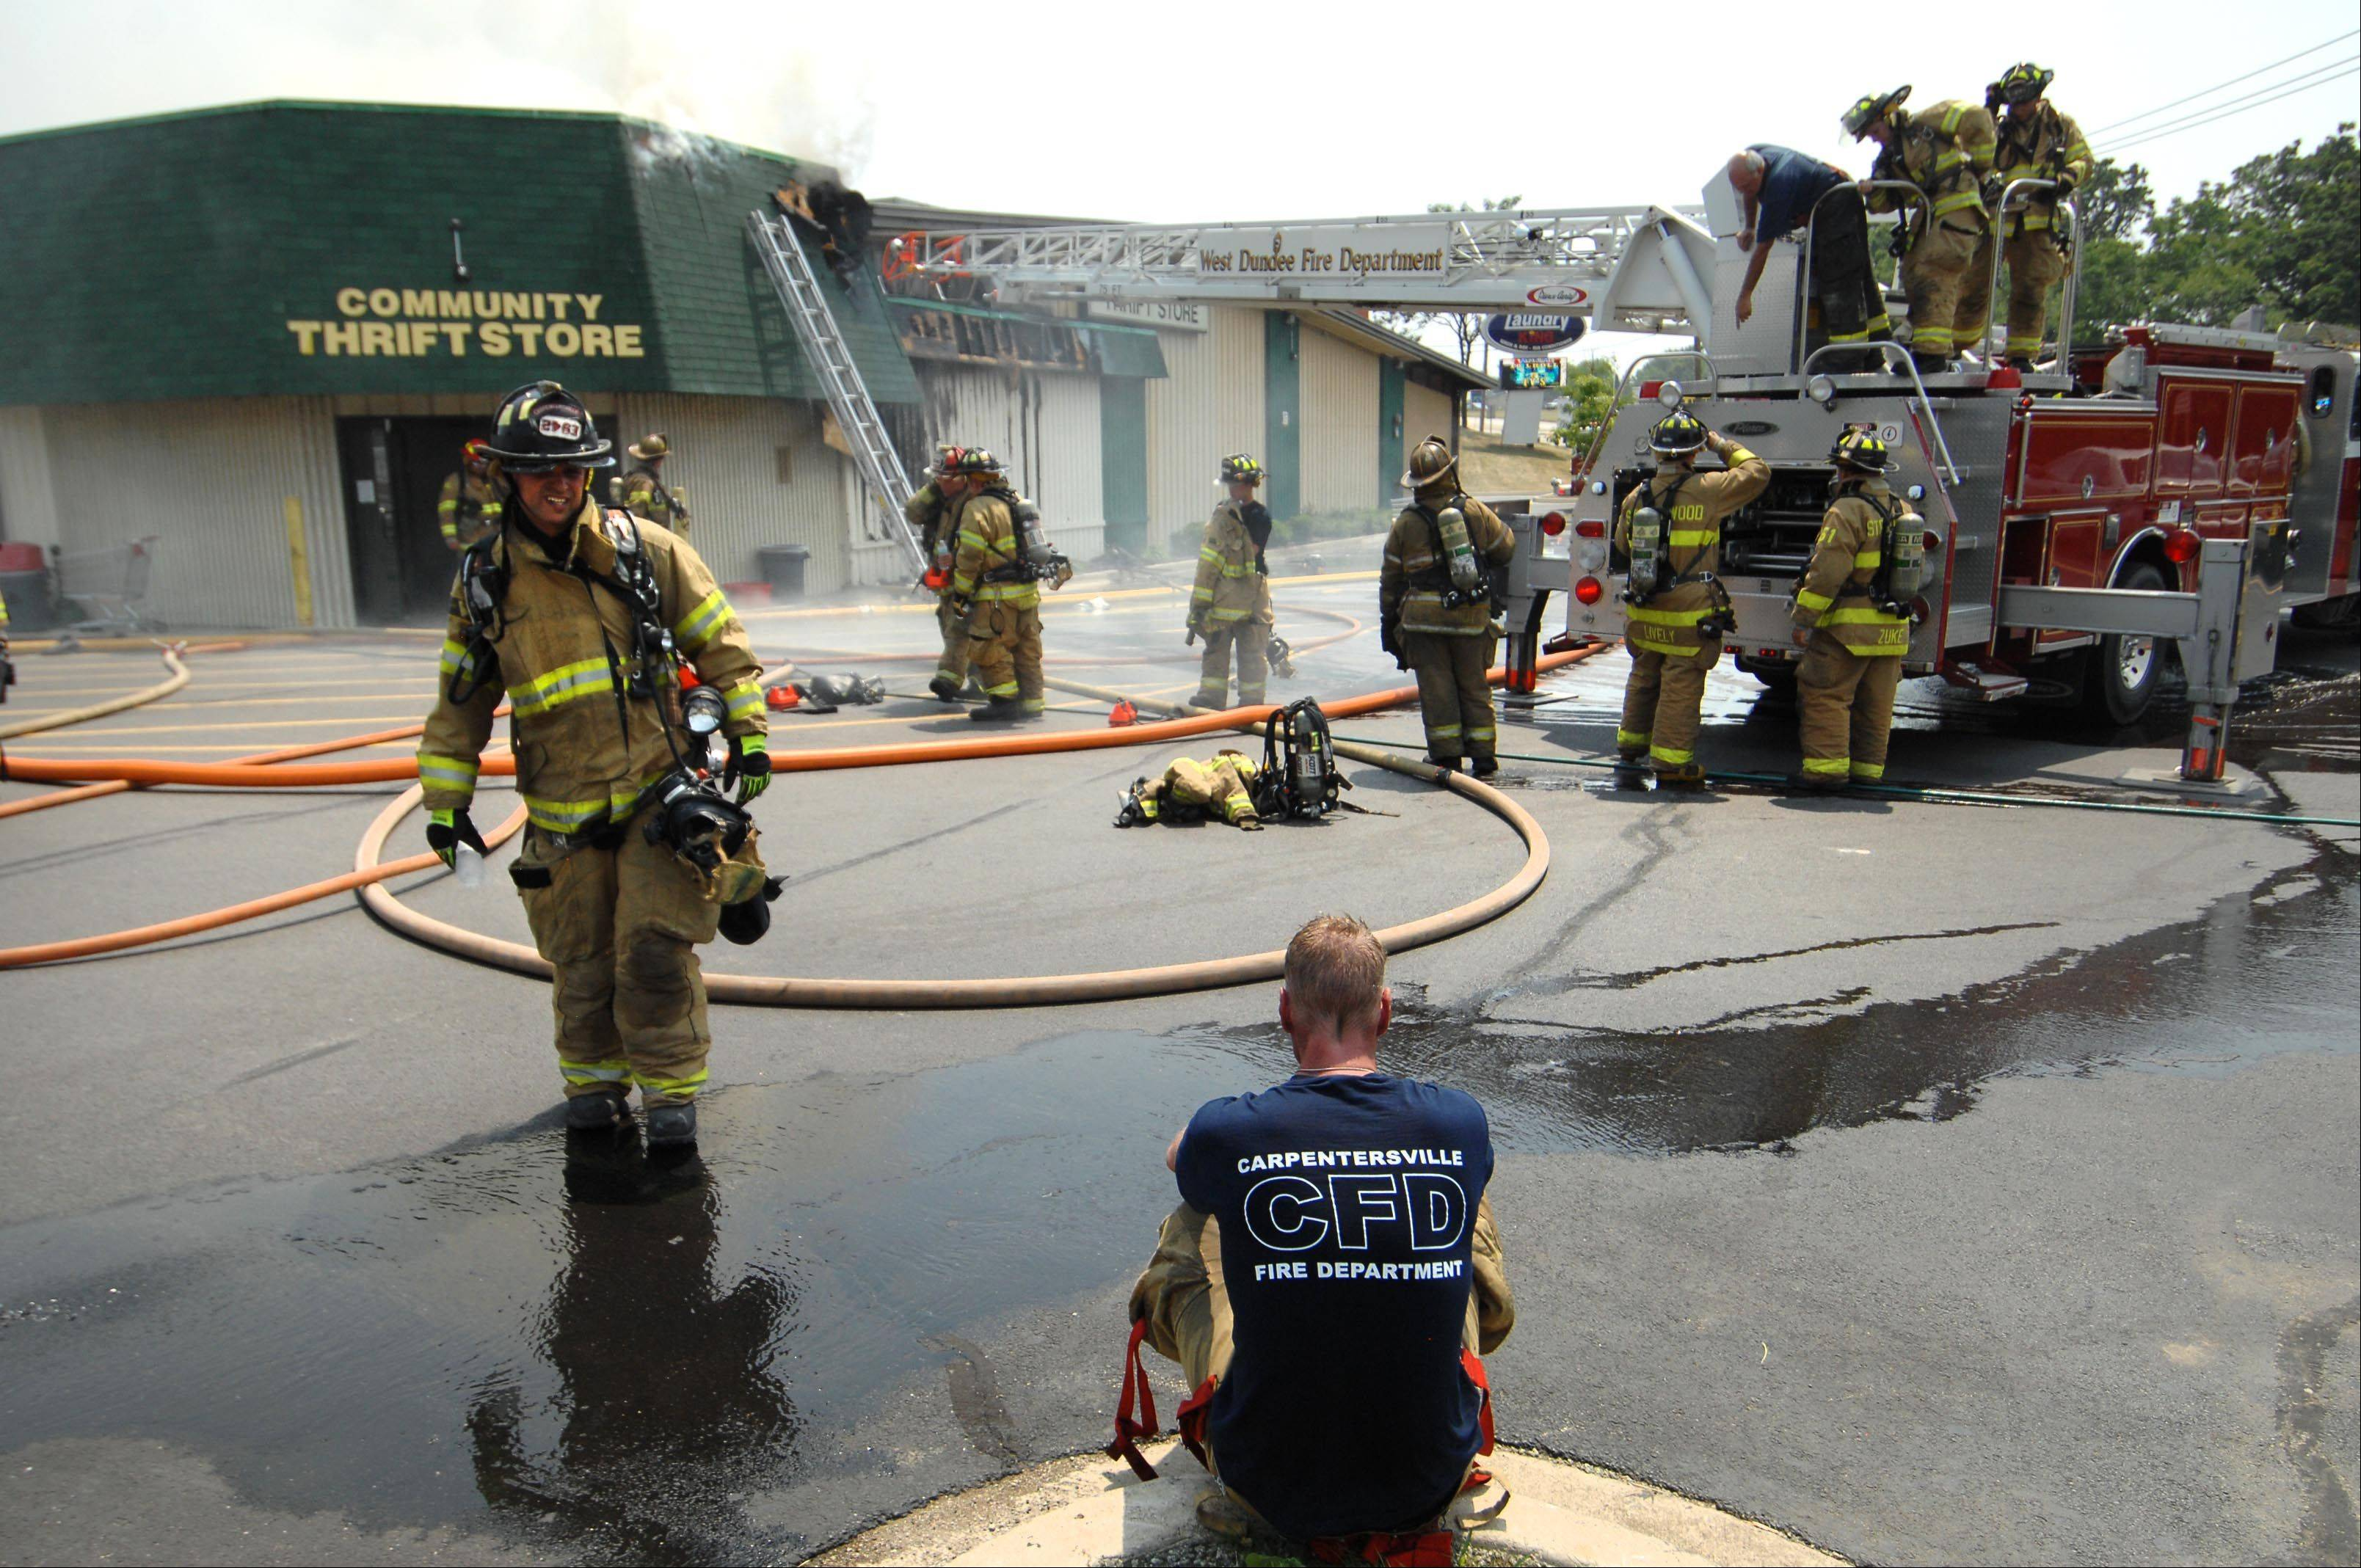 Carpentersville firefighter Eric Vogel rests on a curb as firefighters from several departments battle the heat and fire Thursday at Community Thrift Store in East Dundee.